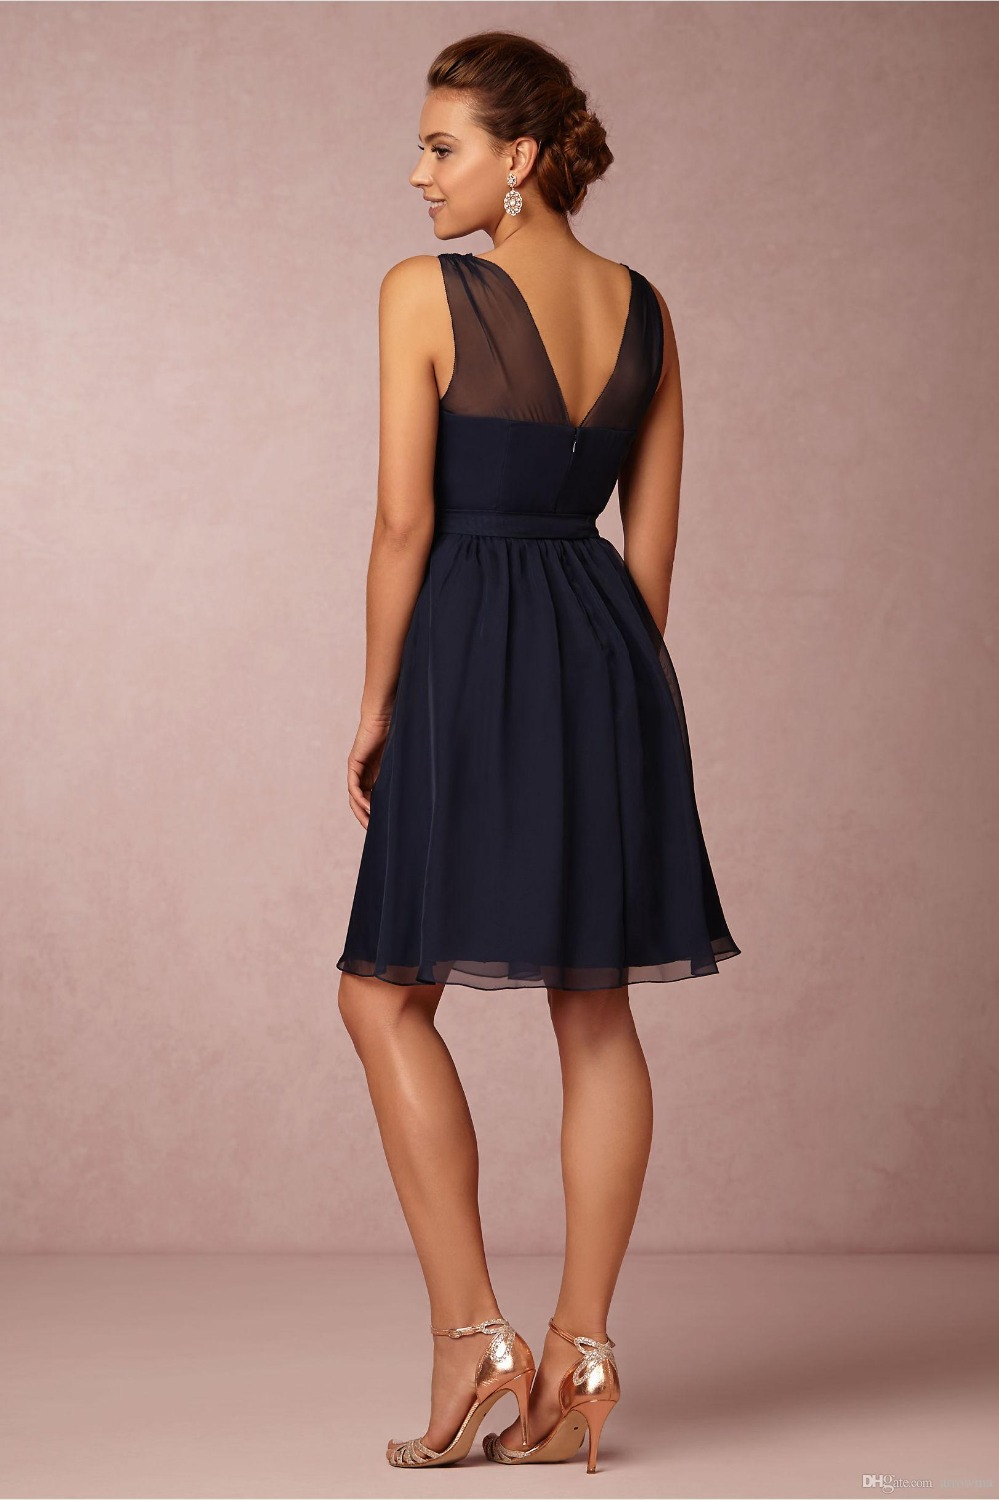 Navy Blue Short Bridesmaid Dresses Uk Down To Earth Bali